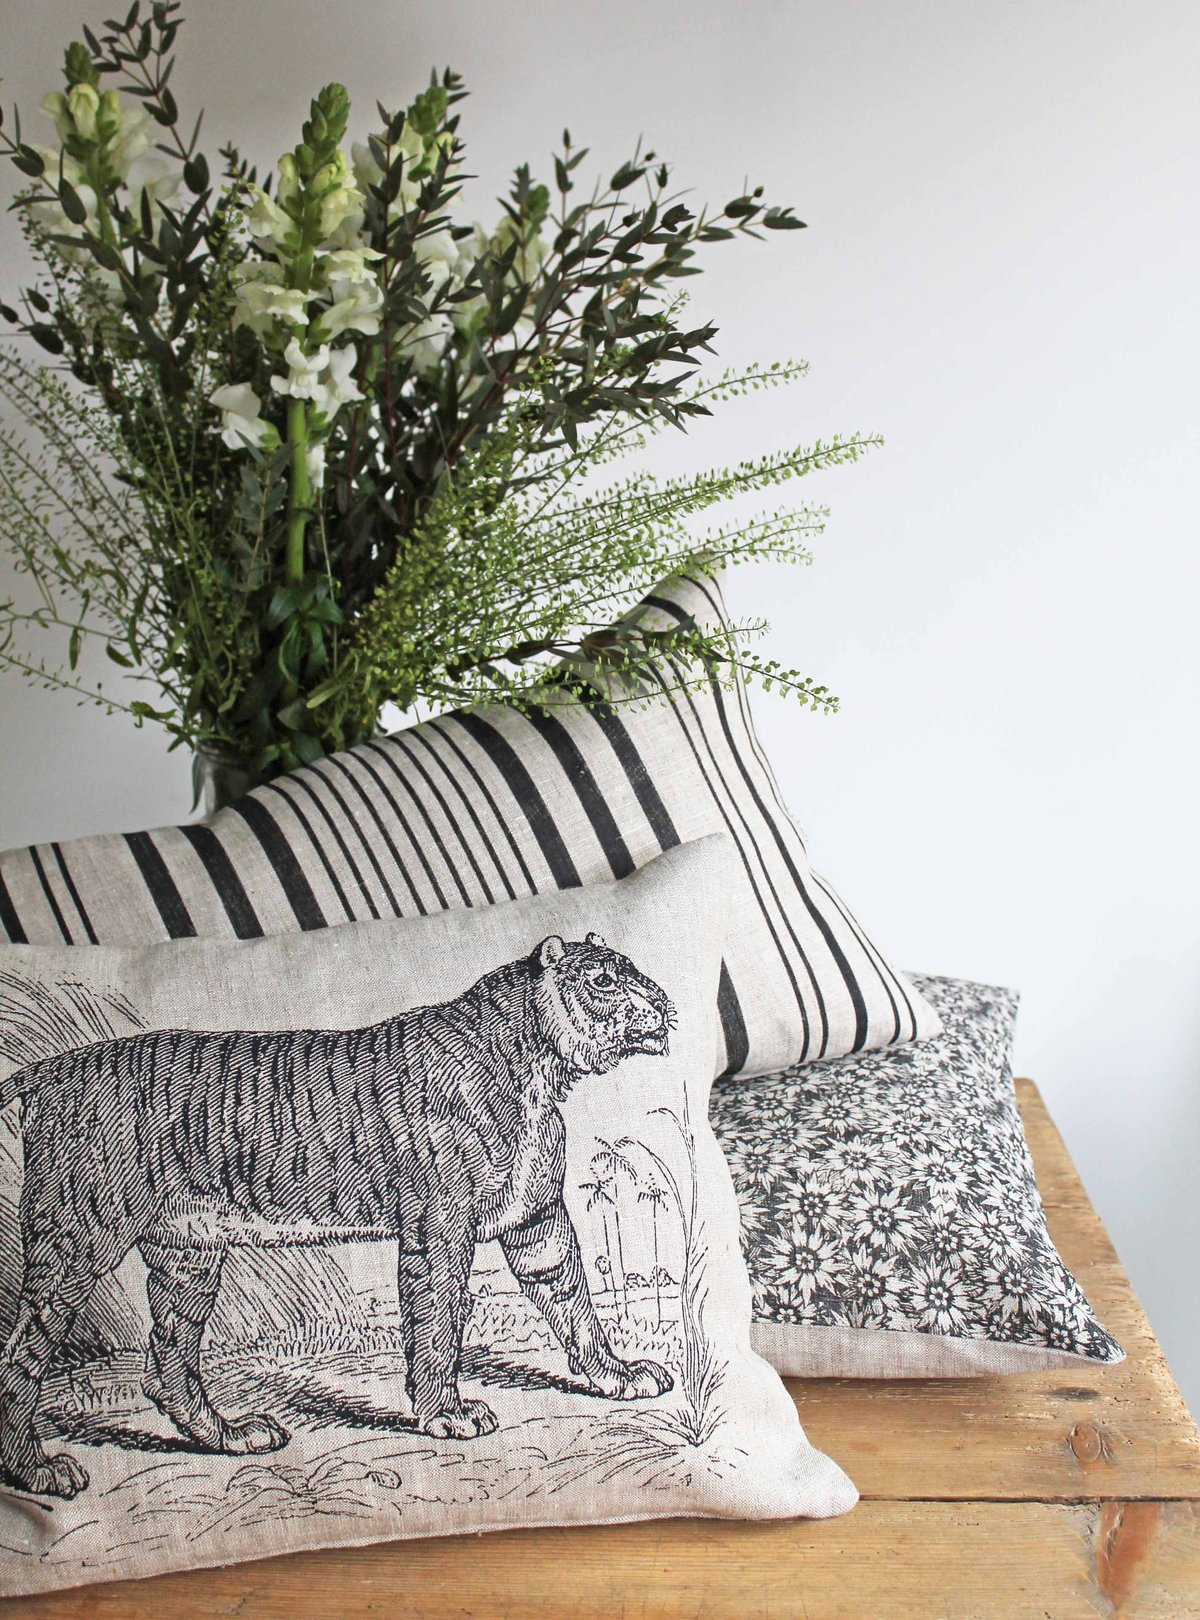 Shere Khan Scatter Cushion in Natural Linen